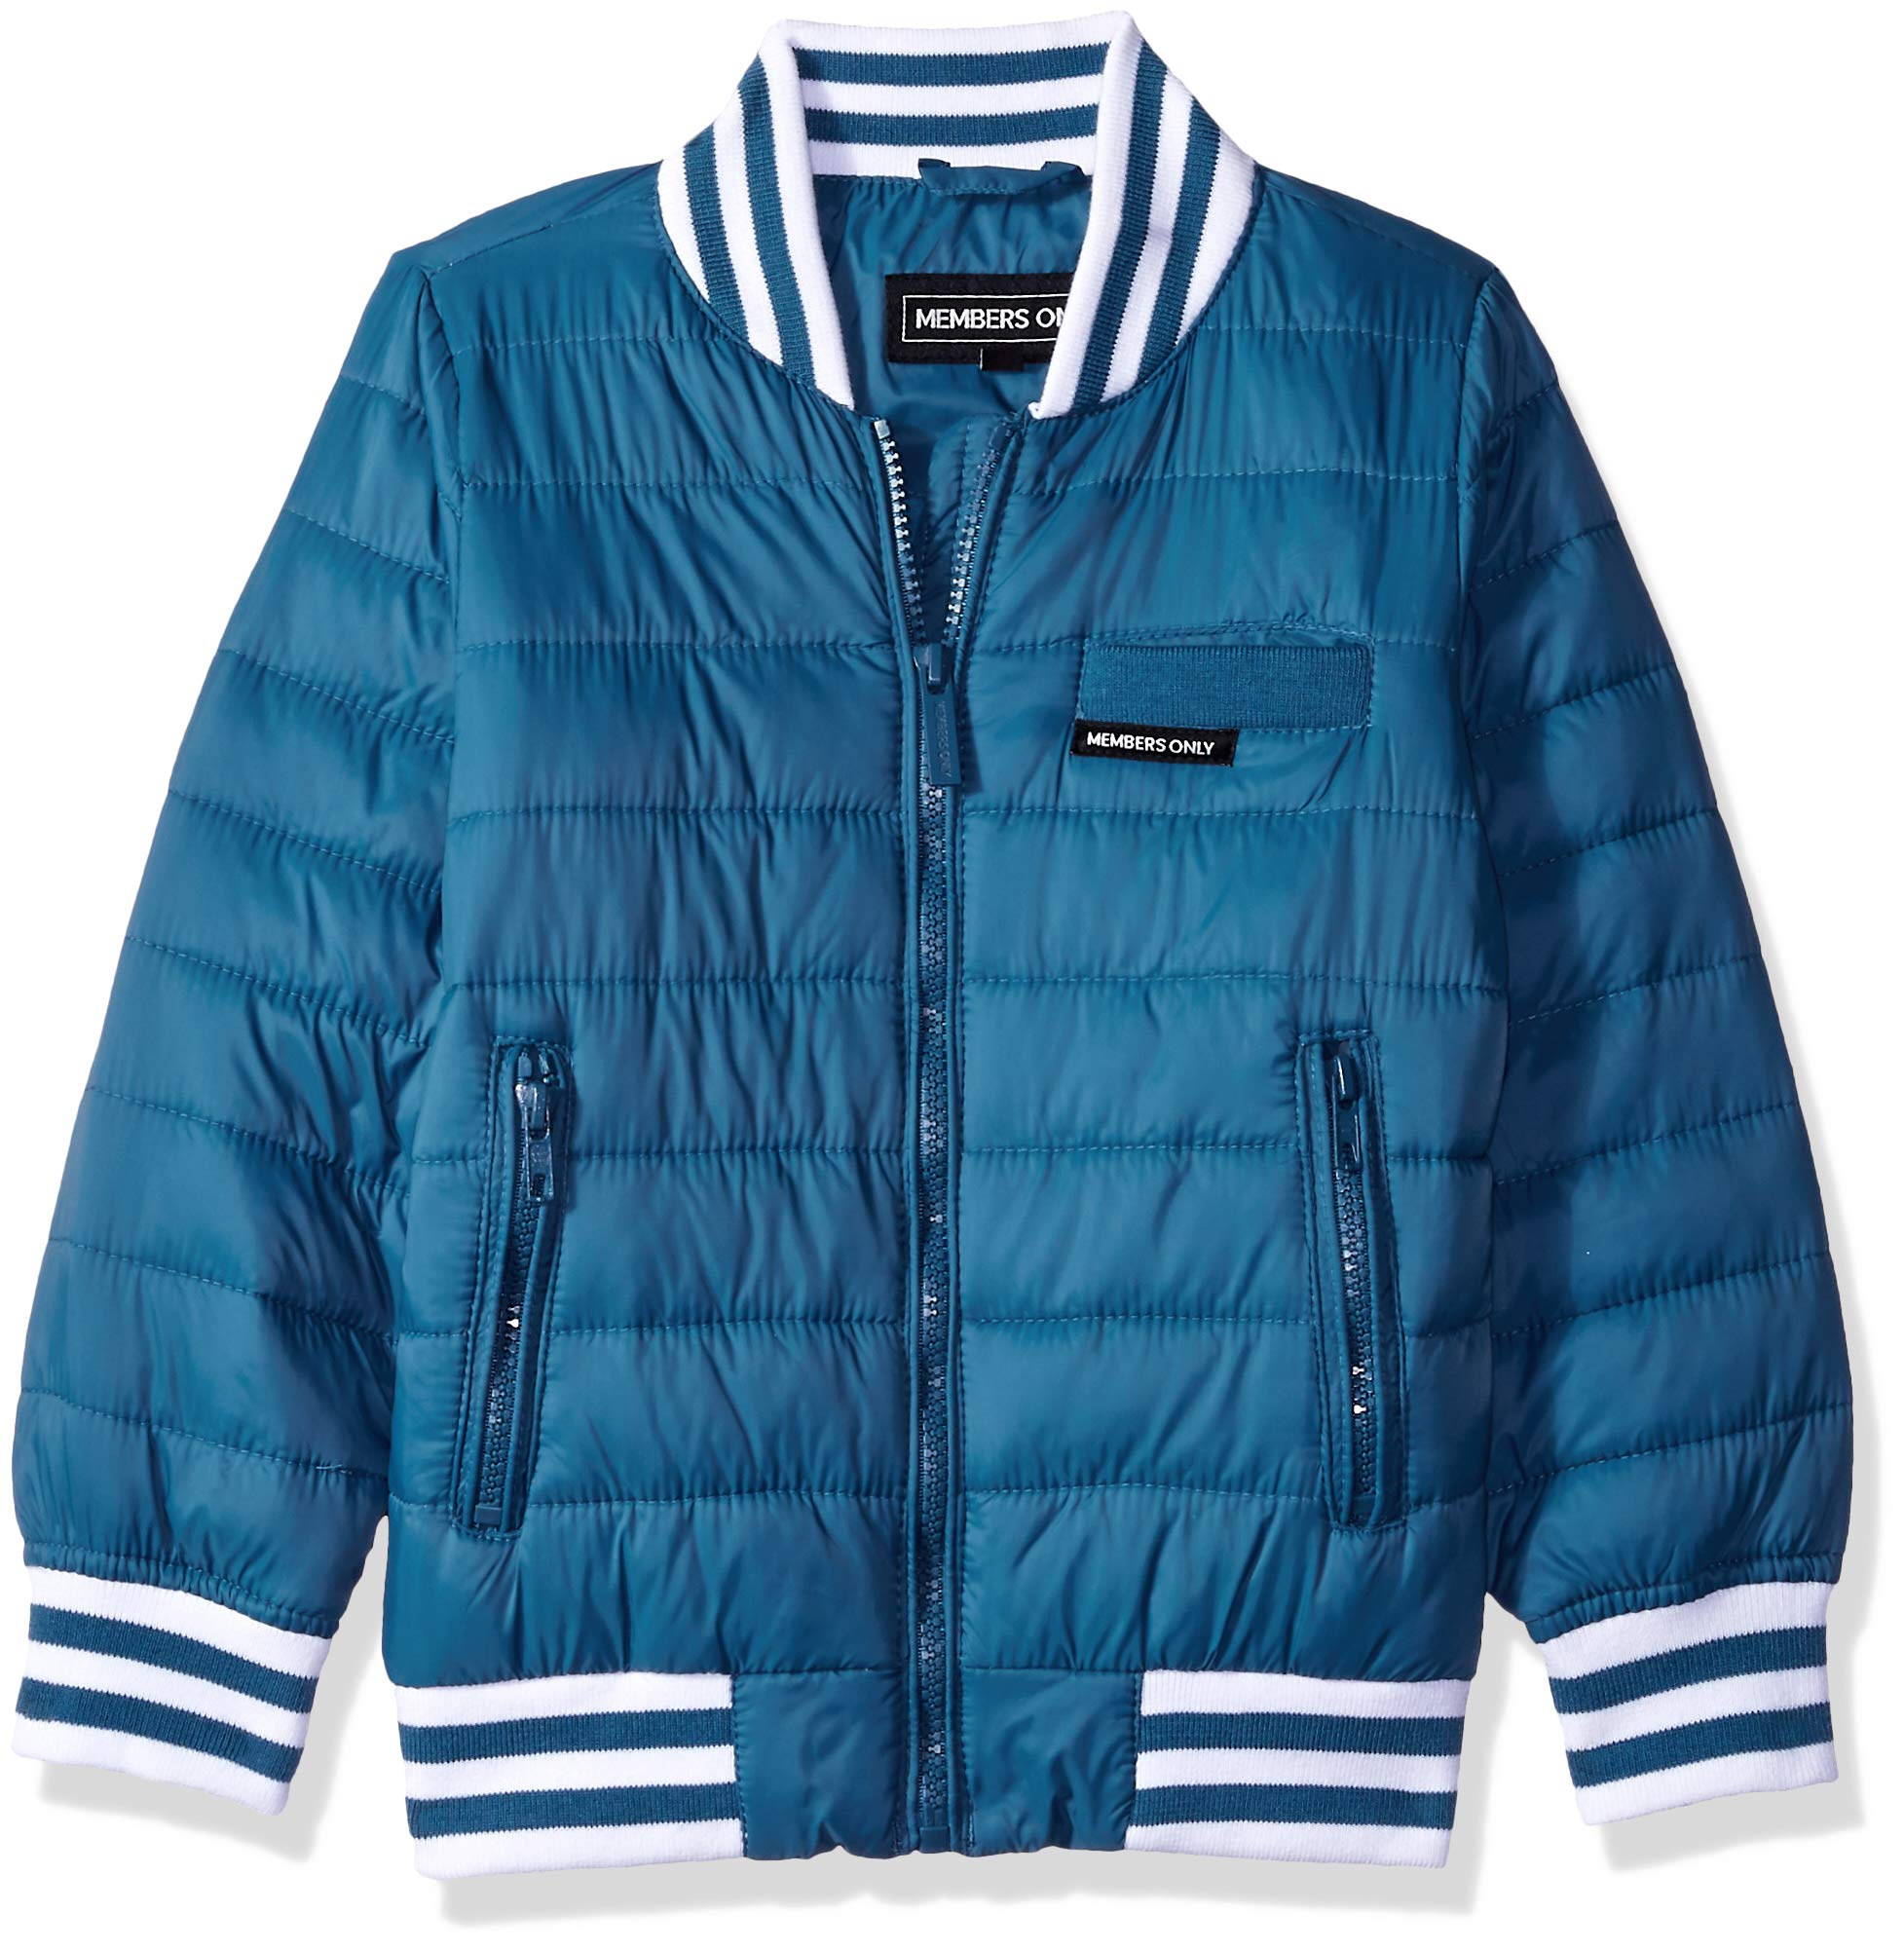 Members Only Boys' Little Blend Quilted Bomber Jacket, deep sea, 5 by Members Only (Image #1)